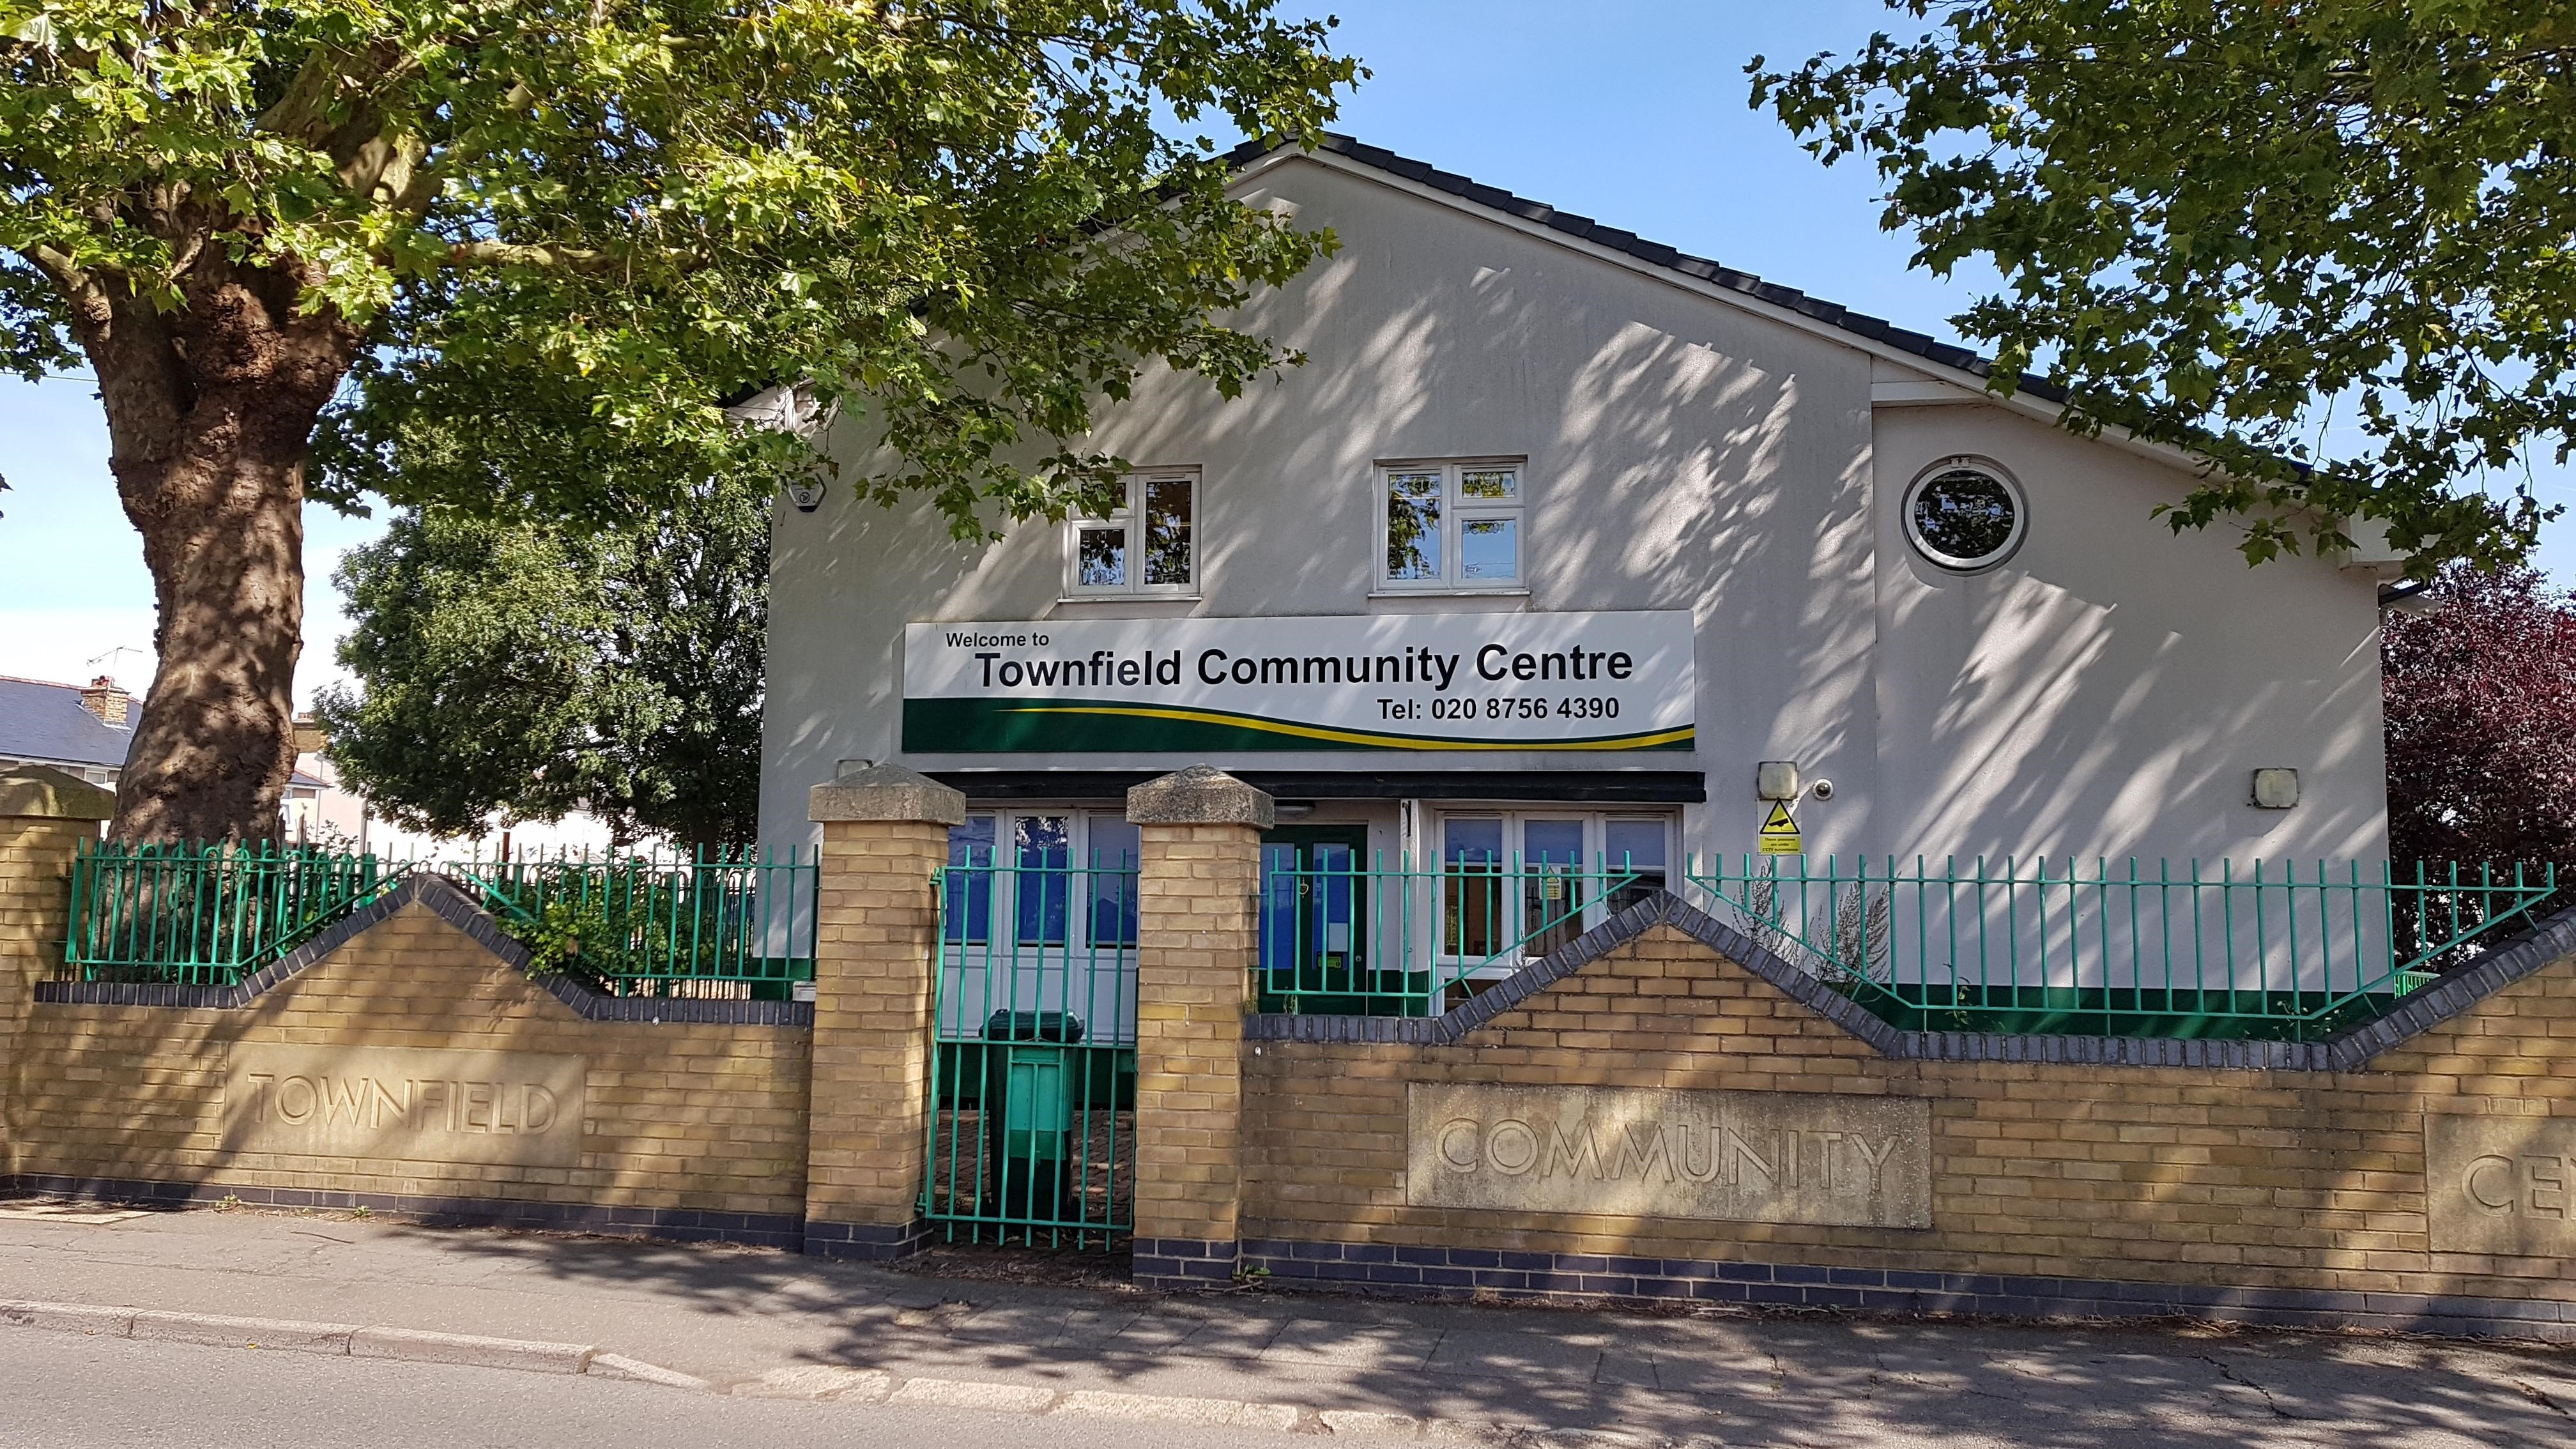 Picture of outside of Townfield Community Centre